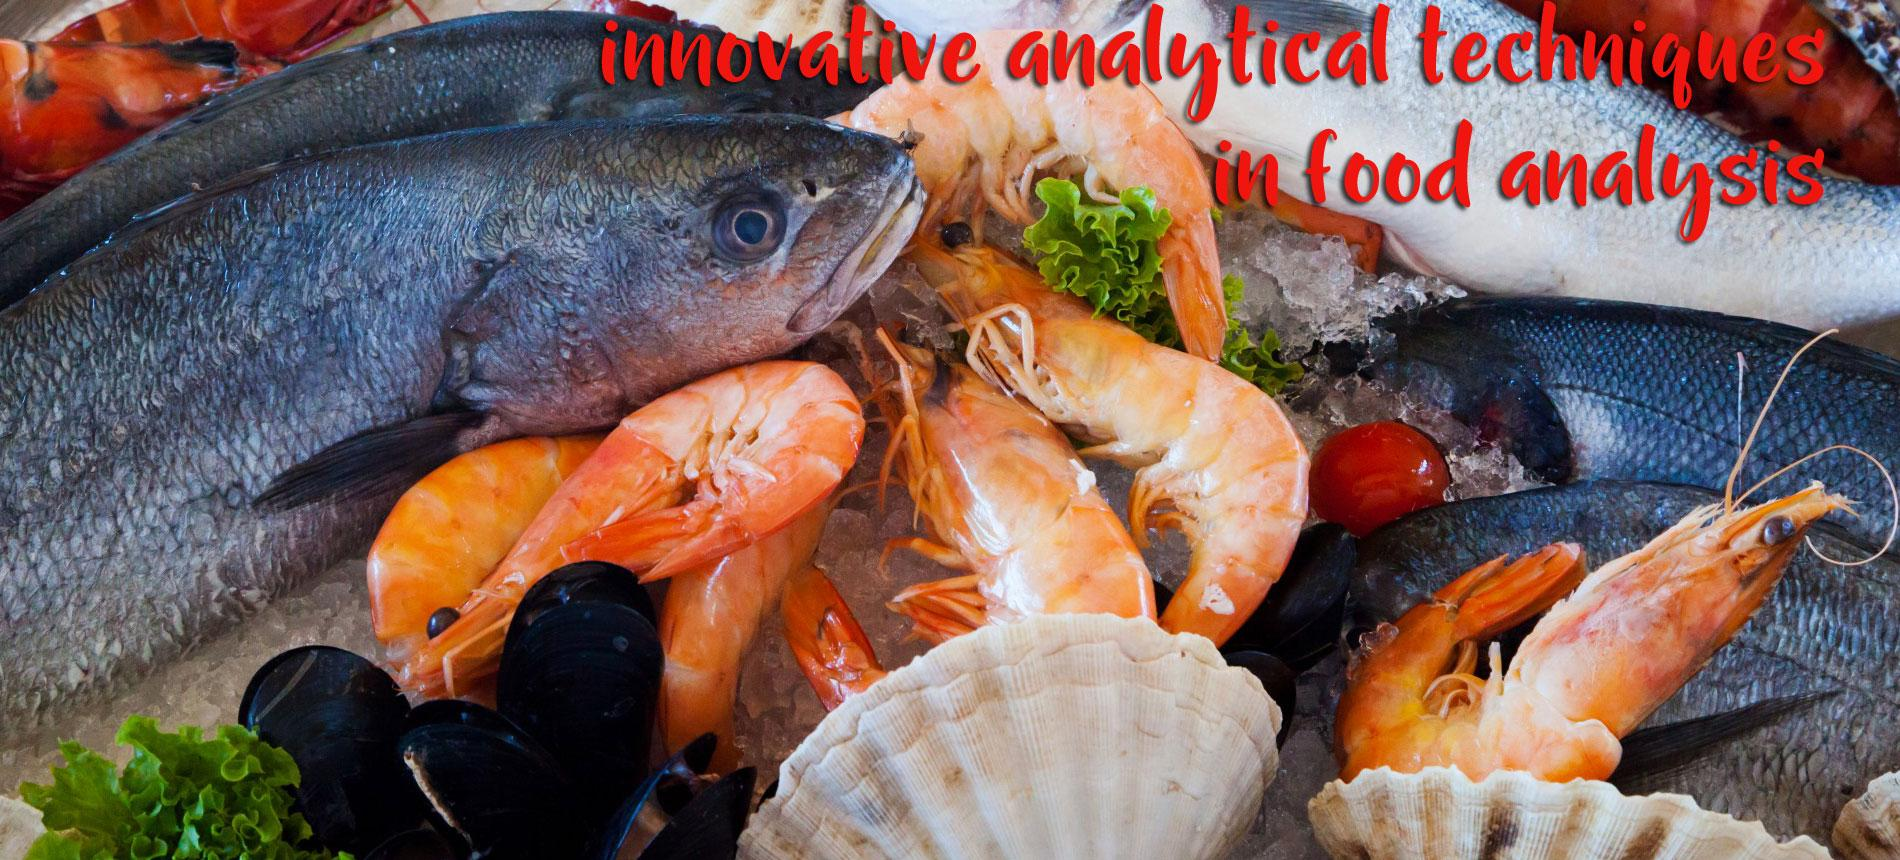 INNOVATIVE ANALYTICAL TECHNIQUES IN FOOD ANALYSIS